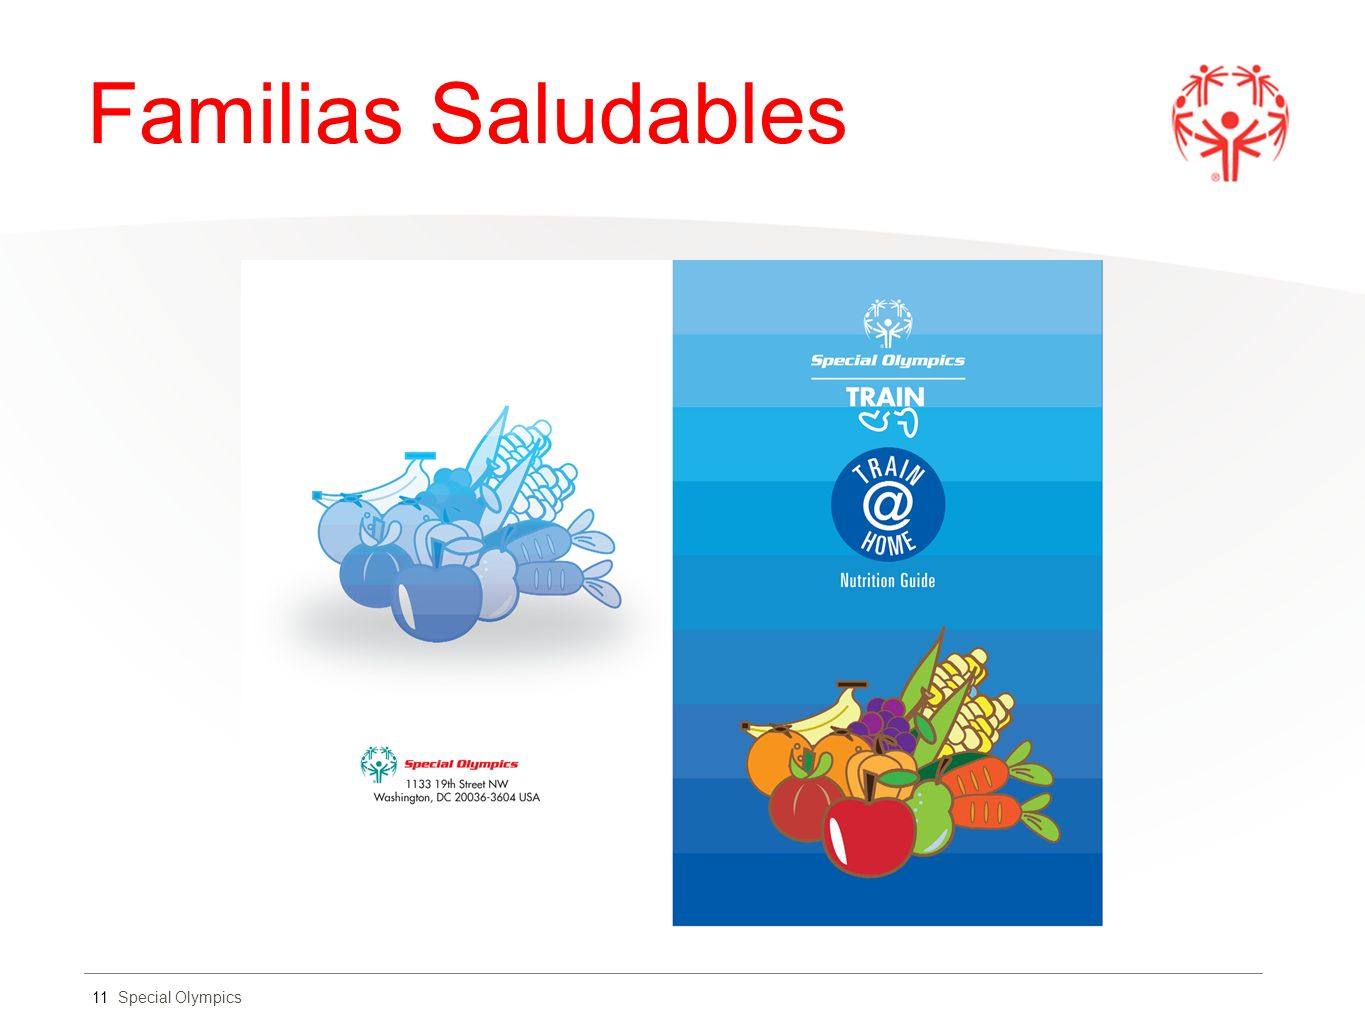 Special Olympics Familias Saludables 11